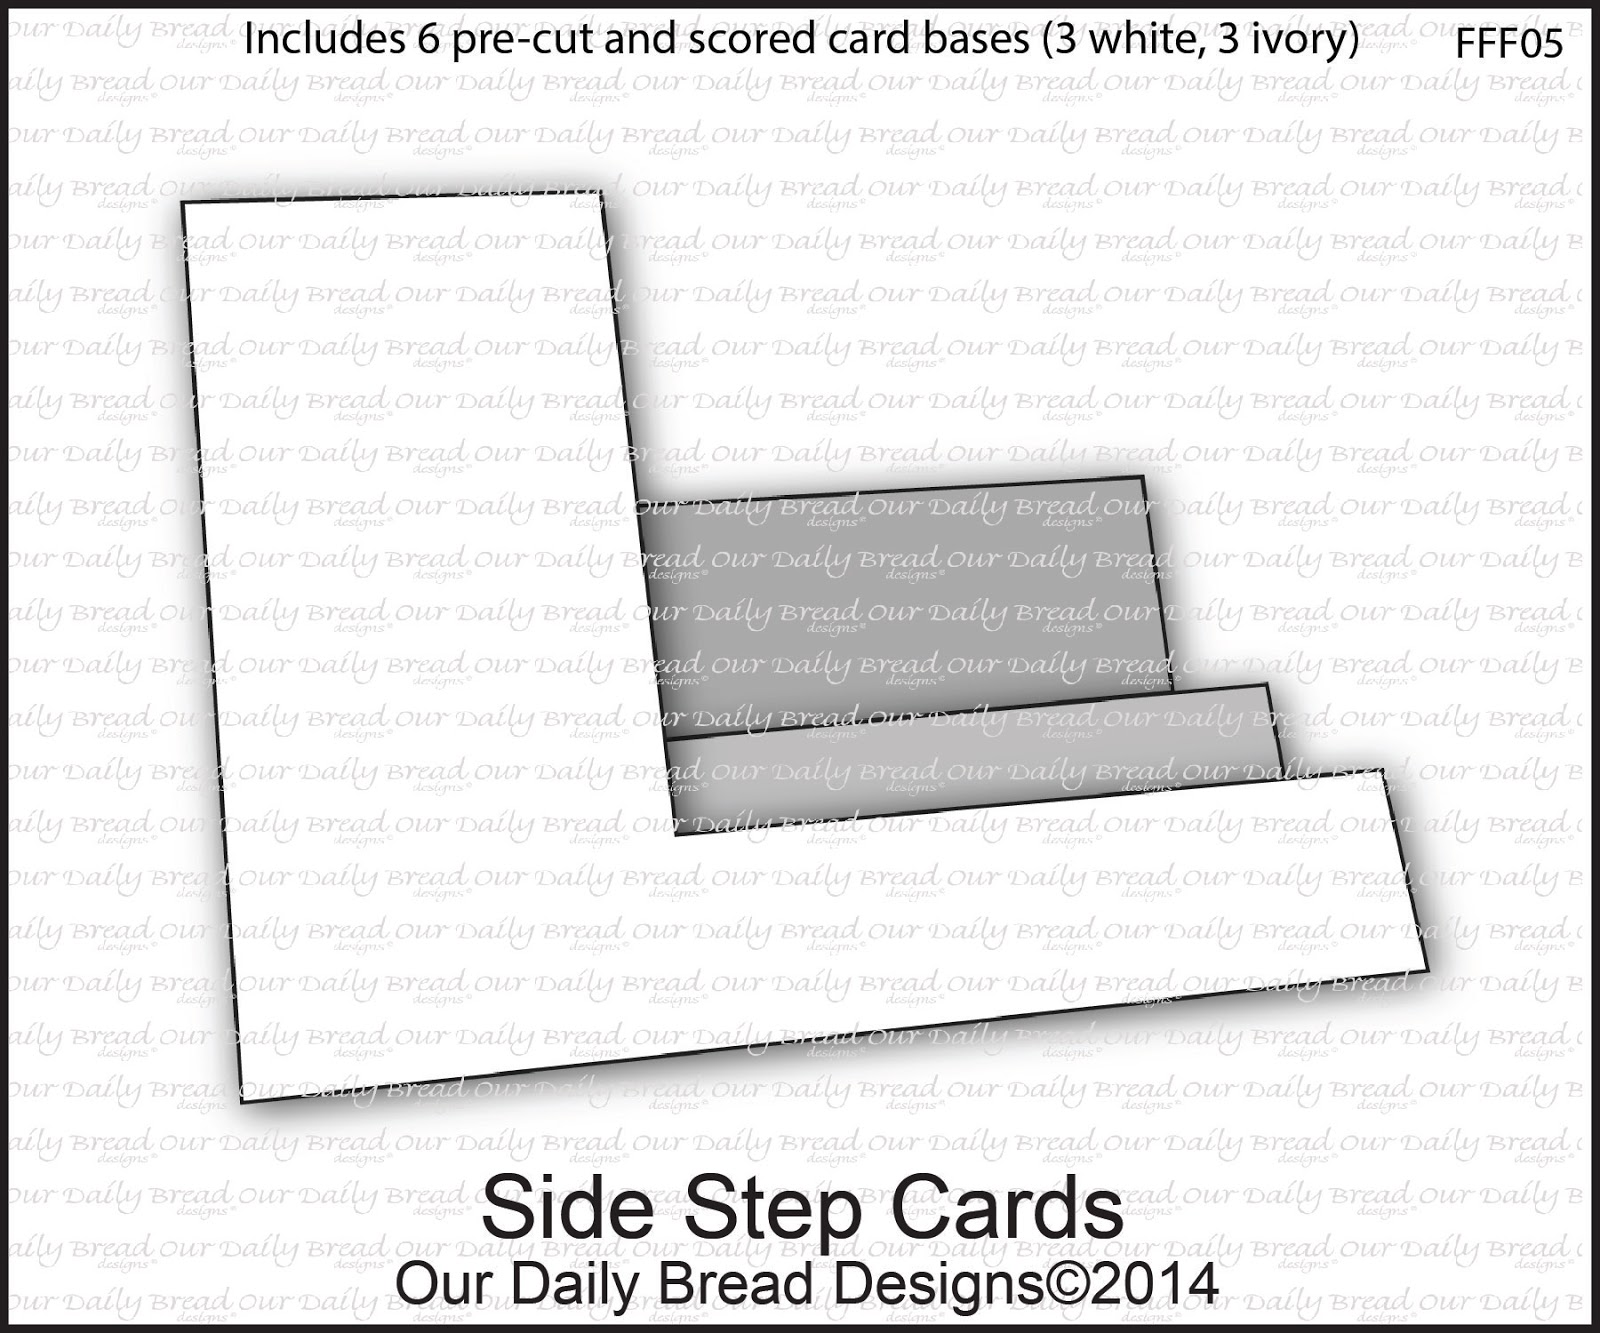 Our Daily Bread Designs Side Step Cards - Includes 6 pre-cut and scored card bases (3 White, 3 Ivory)